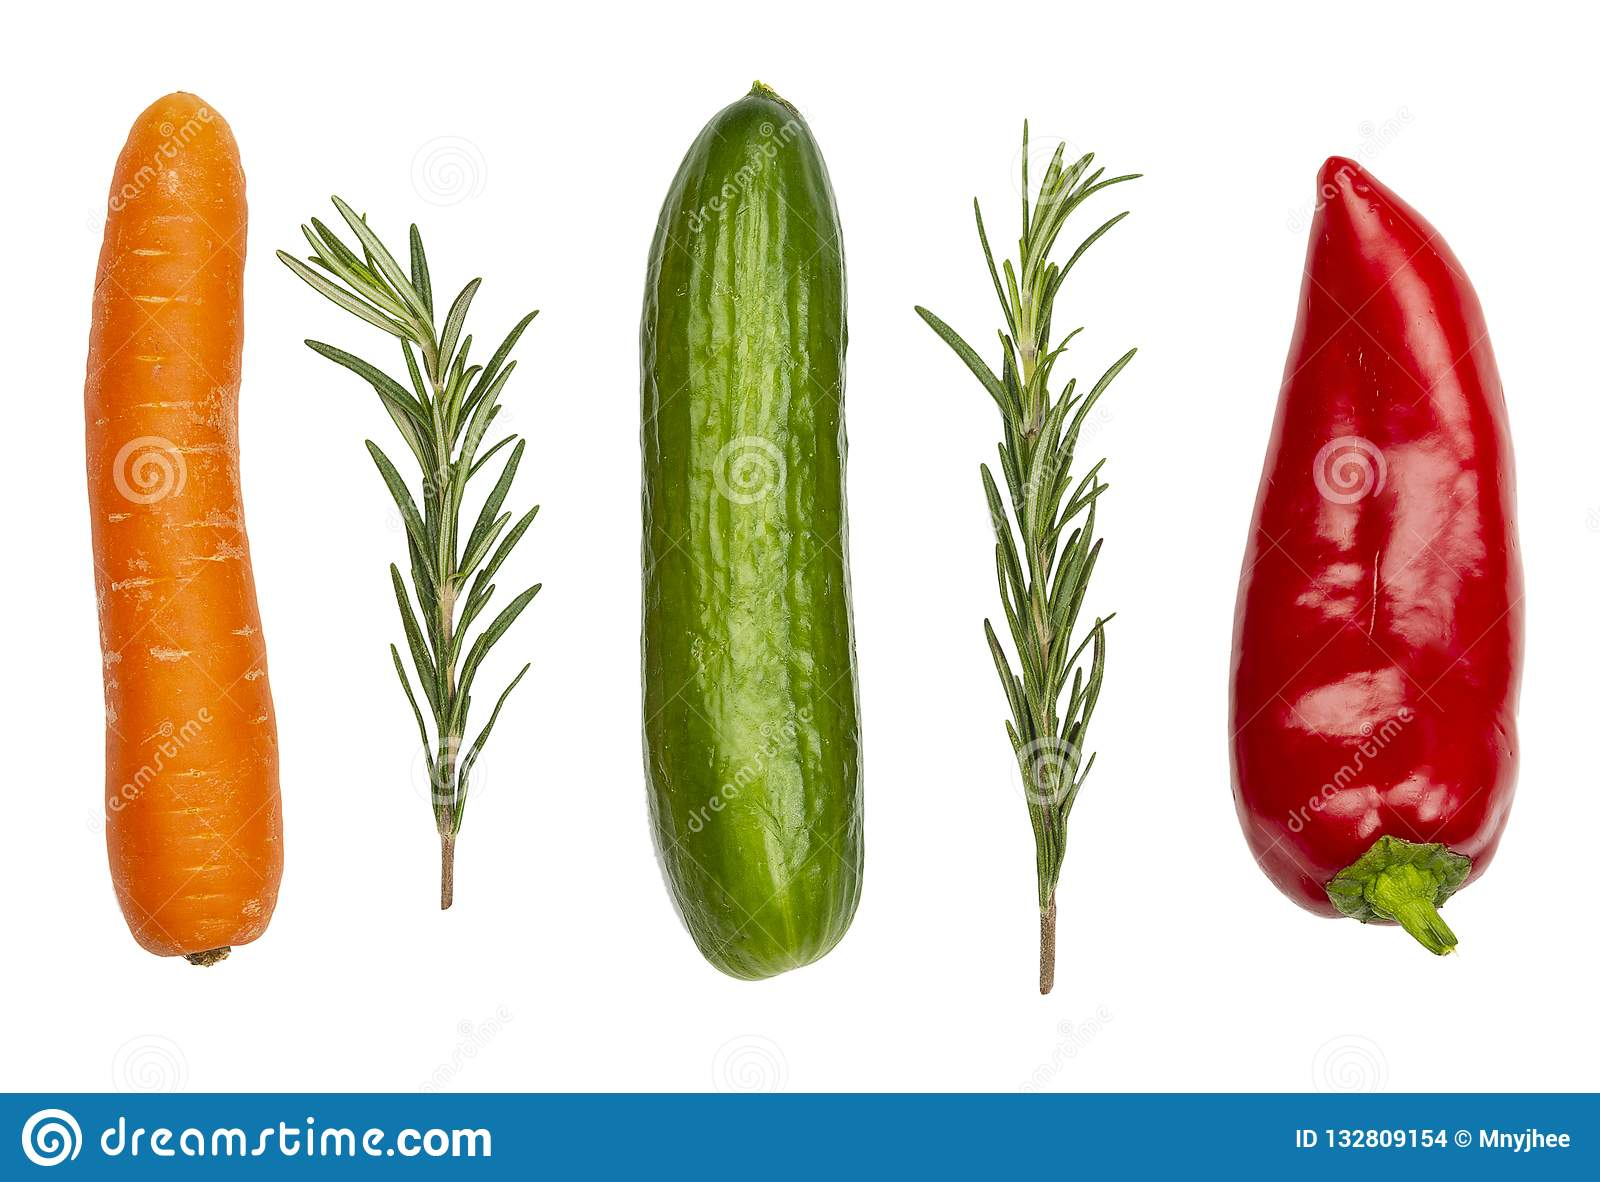 Fresh vegetables isolated on white. Carrot, cucumber, pepper and